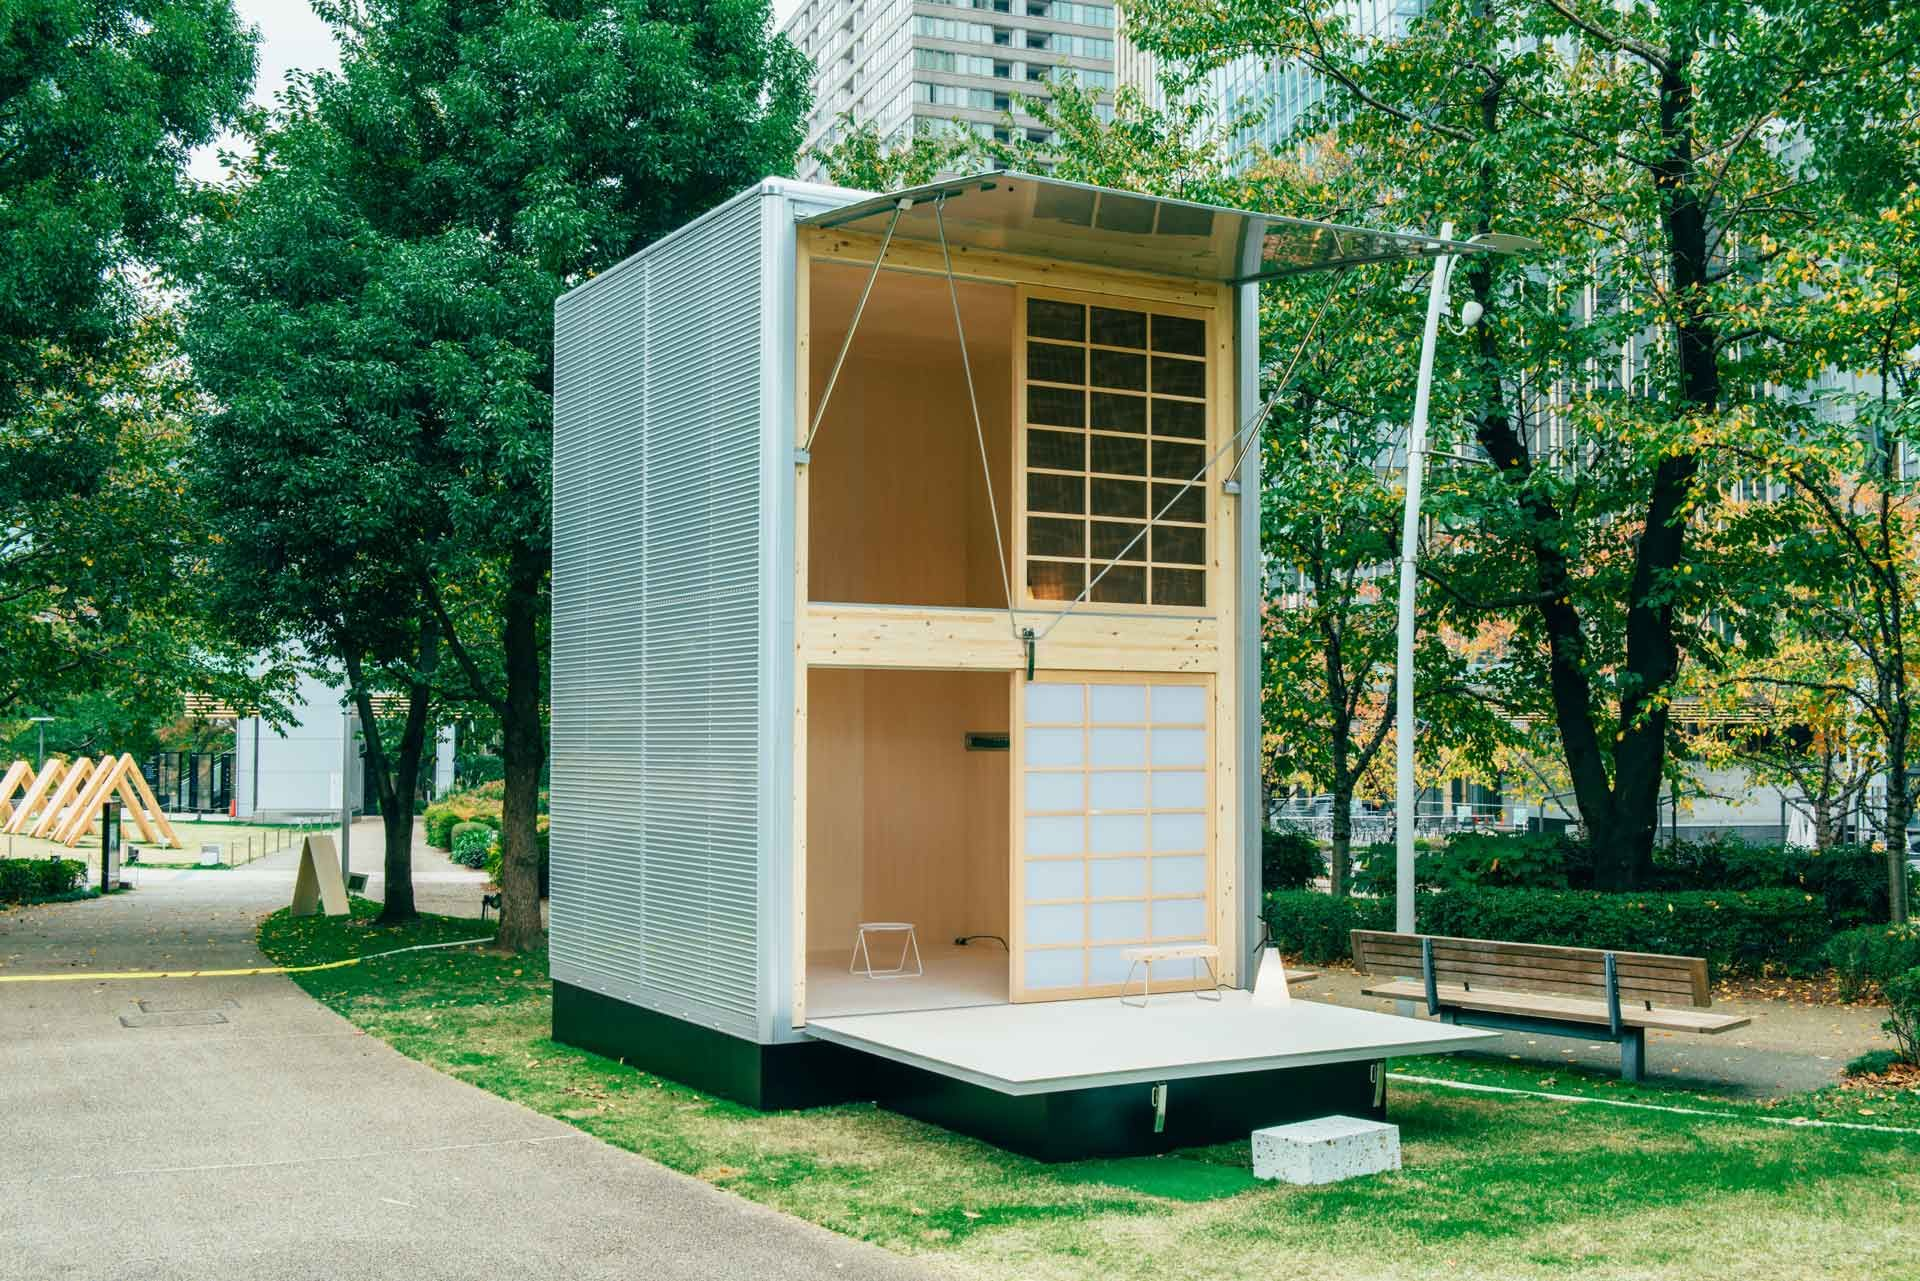 Muji Mobili ~ Simple living: muji will begin selling huts for just $25 000